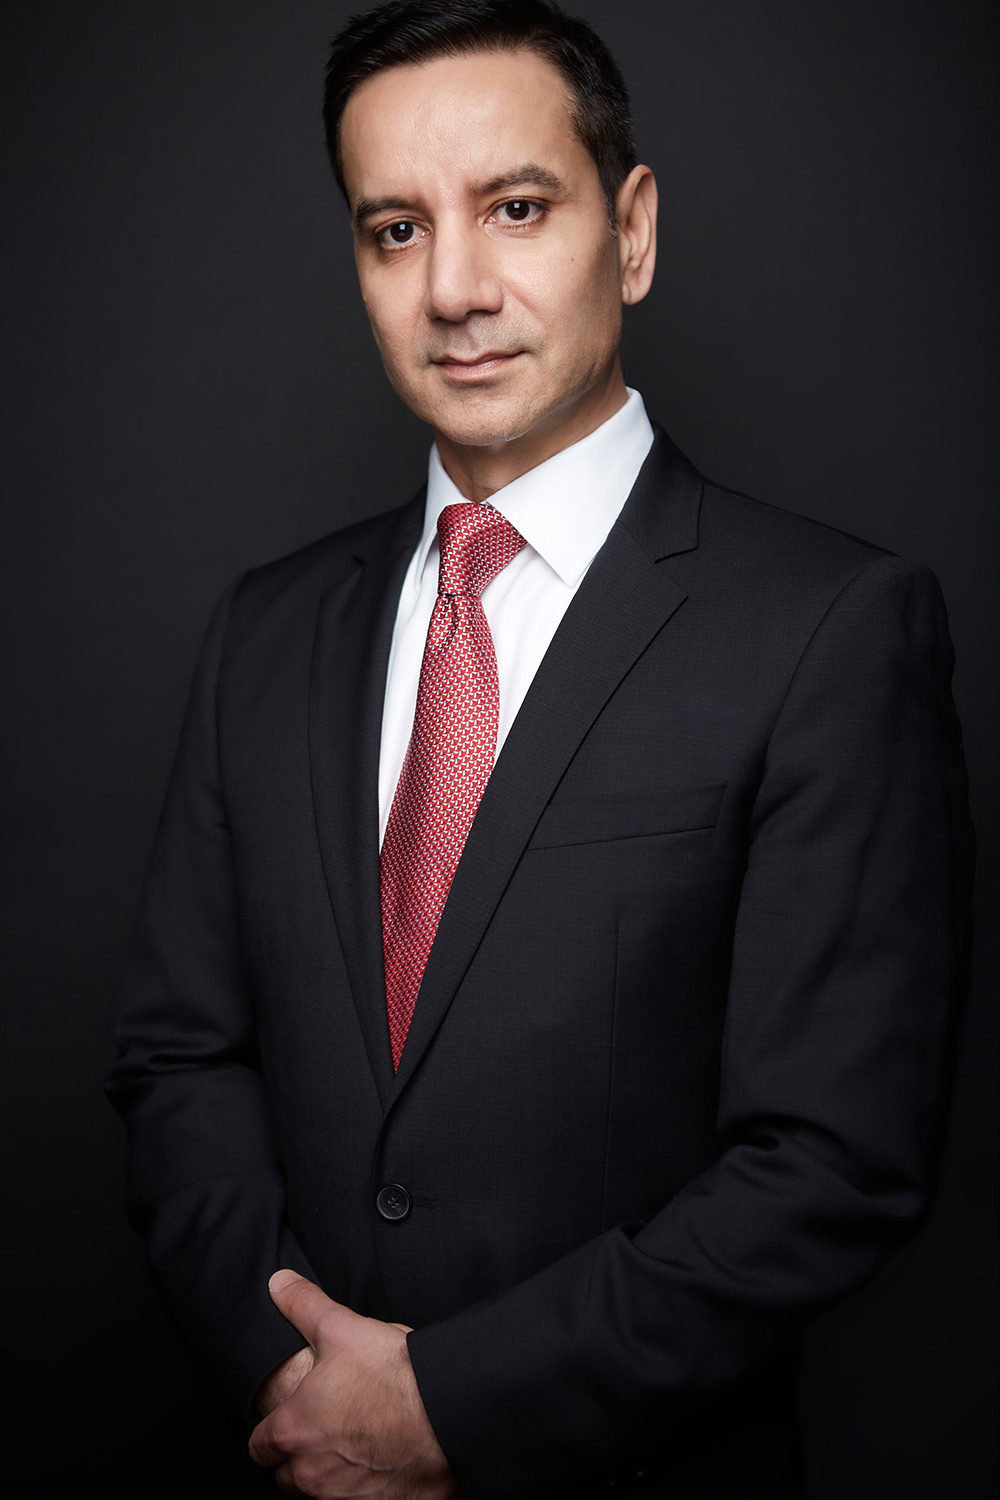 Chicago_Corporate_Portrait_Photographer_Business_Head_Shot_Photography_Tiny_Space_Studio_Chicago